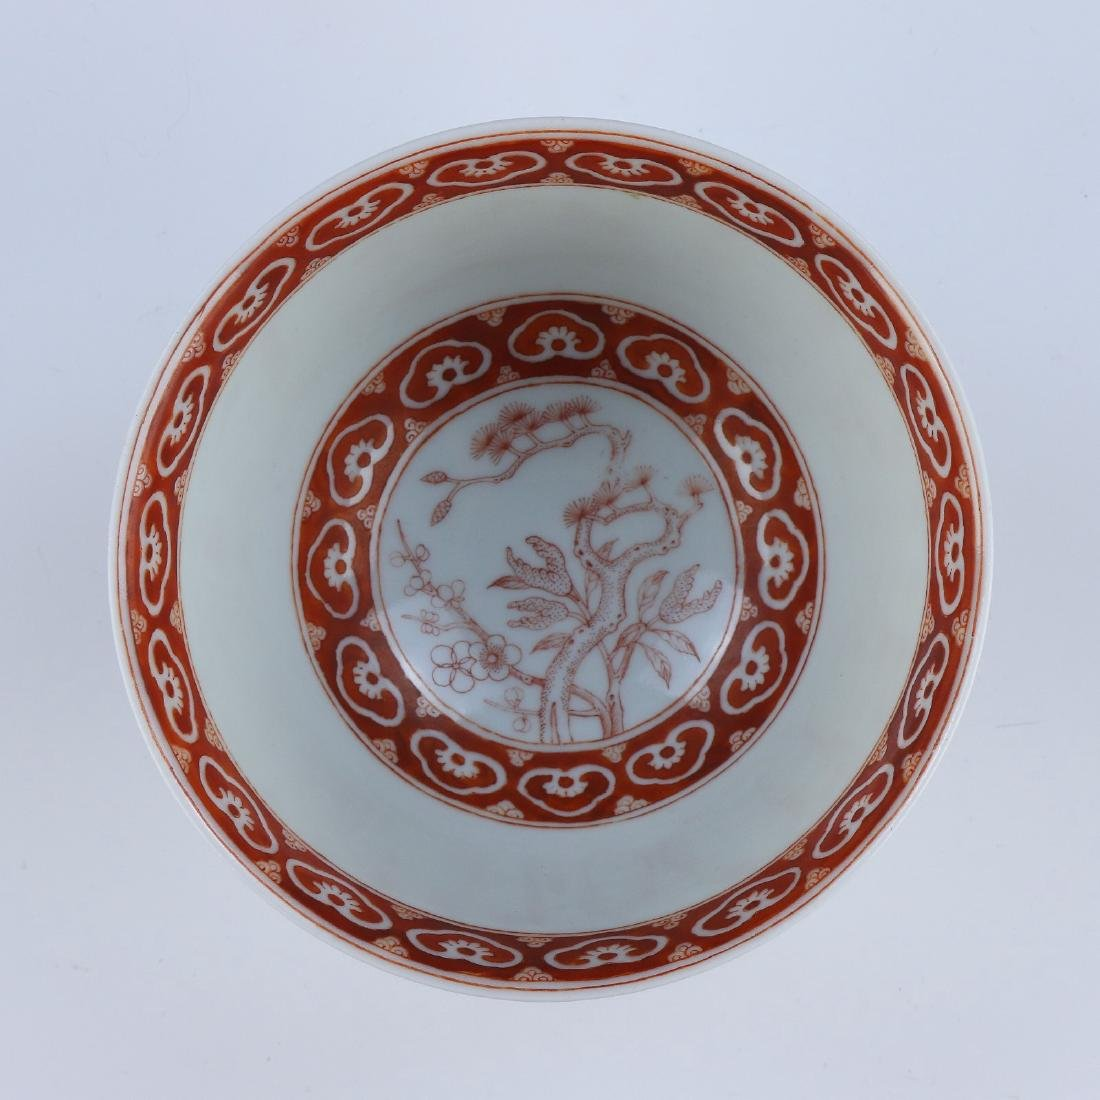 A CHINESE ANTIQUE IRON RED PORCELAIN BOWL - 3